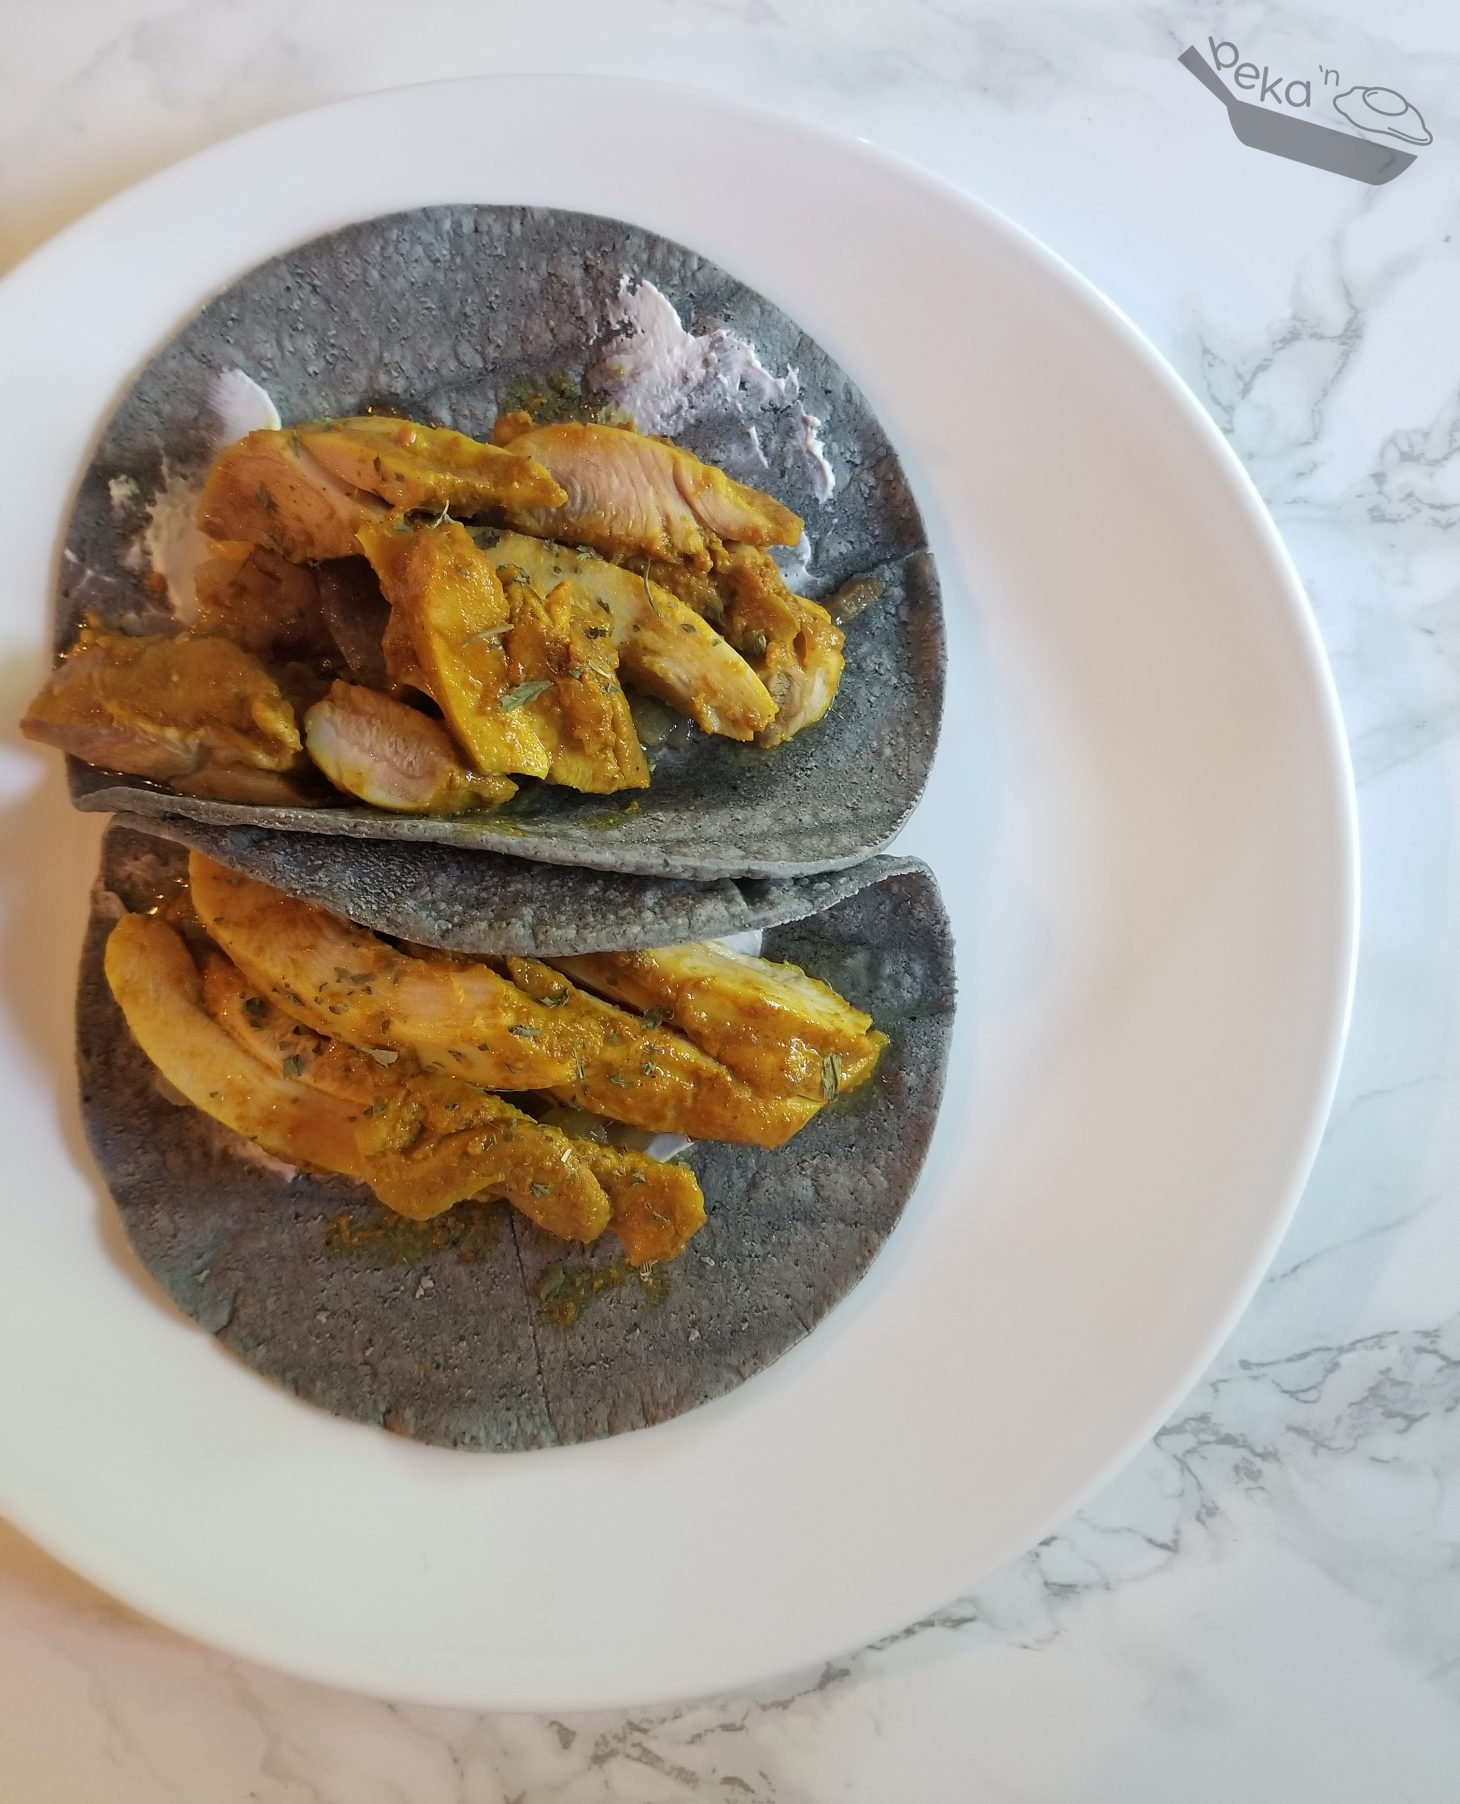 An overhead shot of Tandoori chicken in blue corn tortillas on a white plate. The plate is on a white marble background.